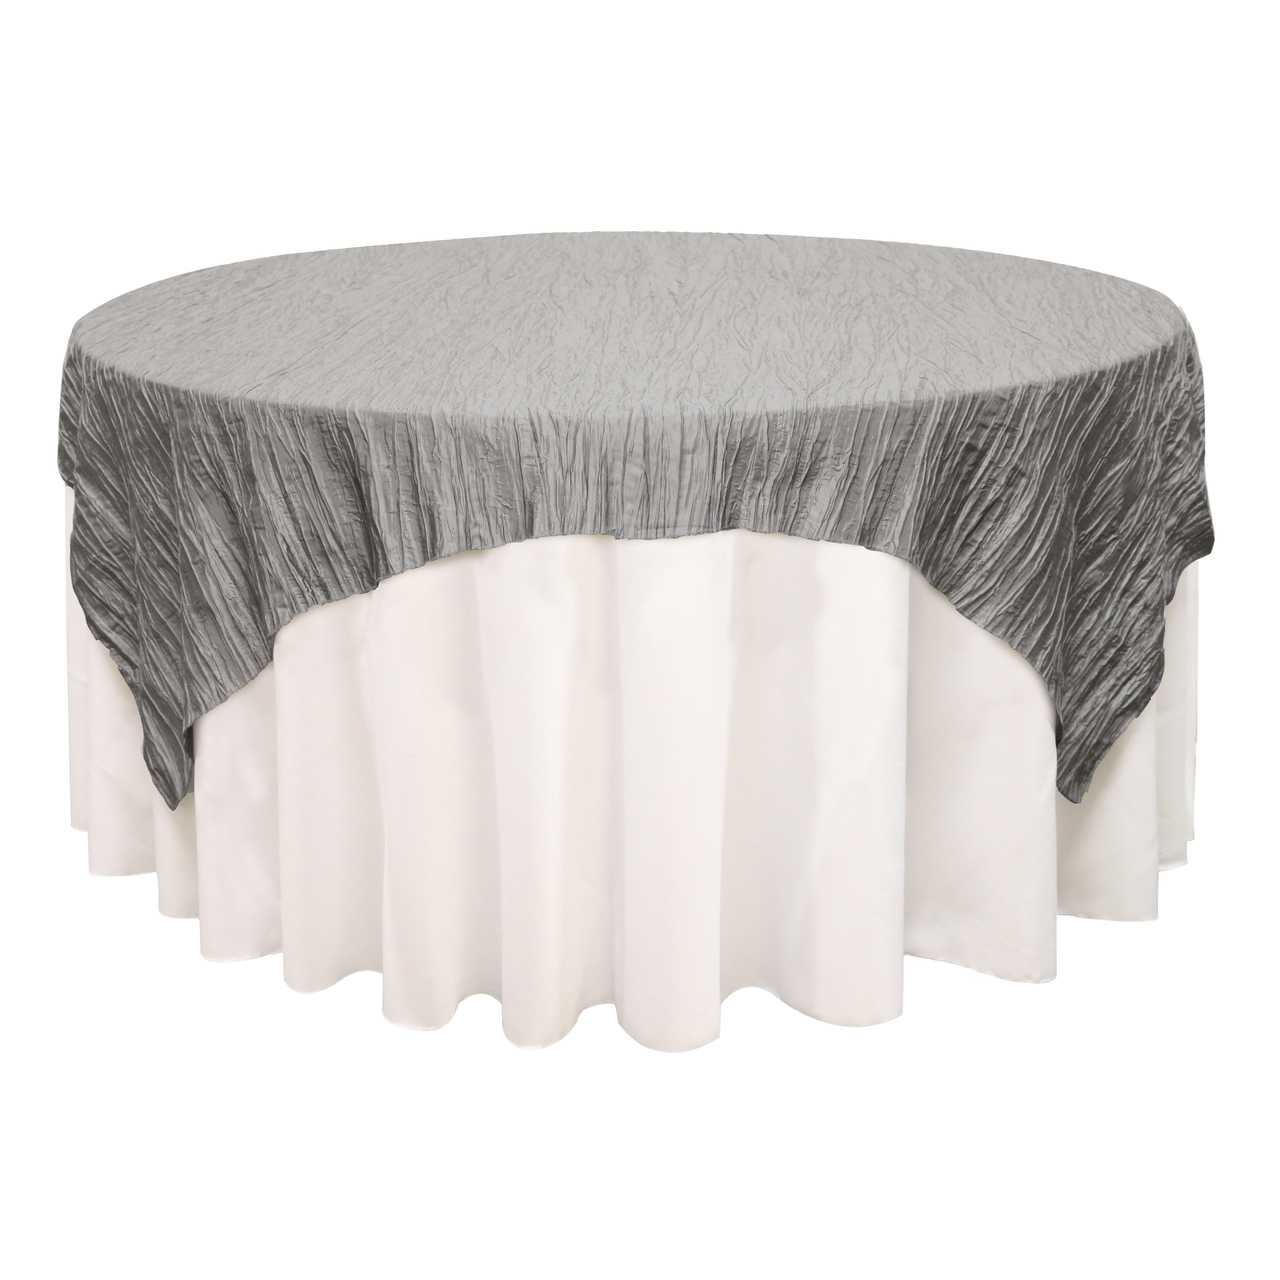 Your Chair Covers - 90 inch Square Crinkle Taffeta Table Overlay Blush for Wedding, Party, Birthday, Patio, etc.